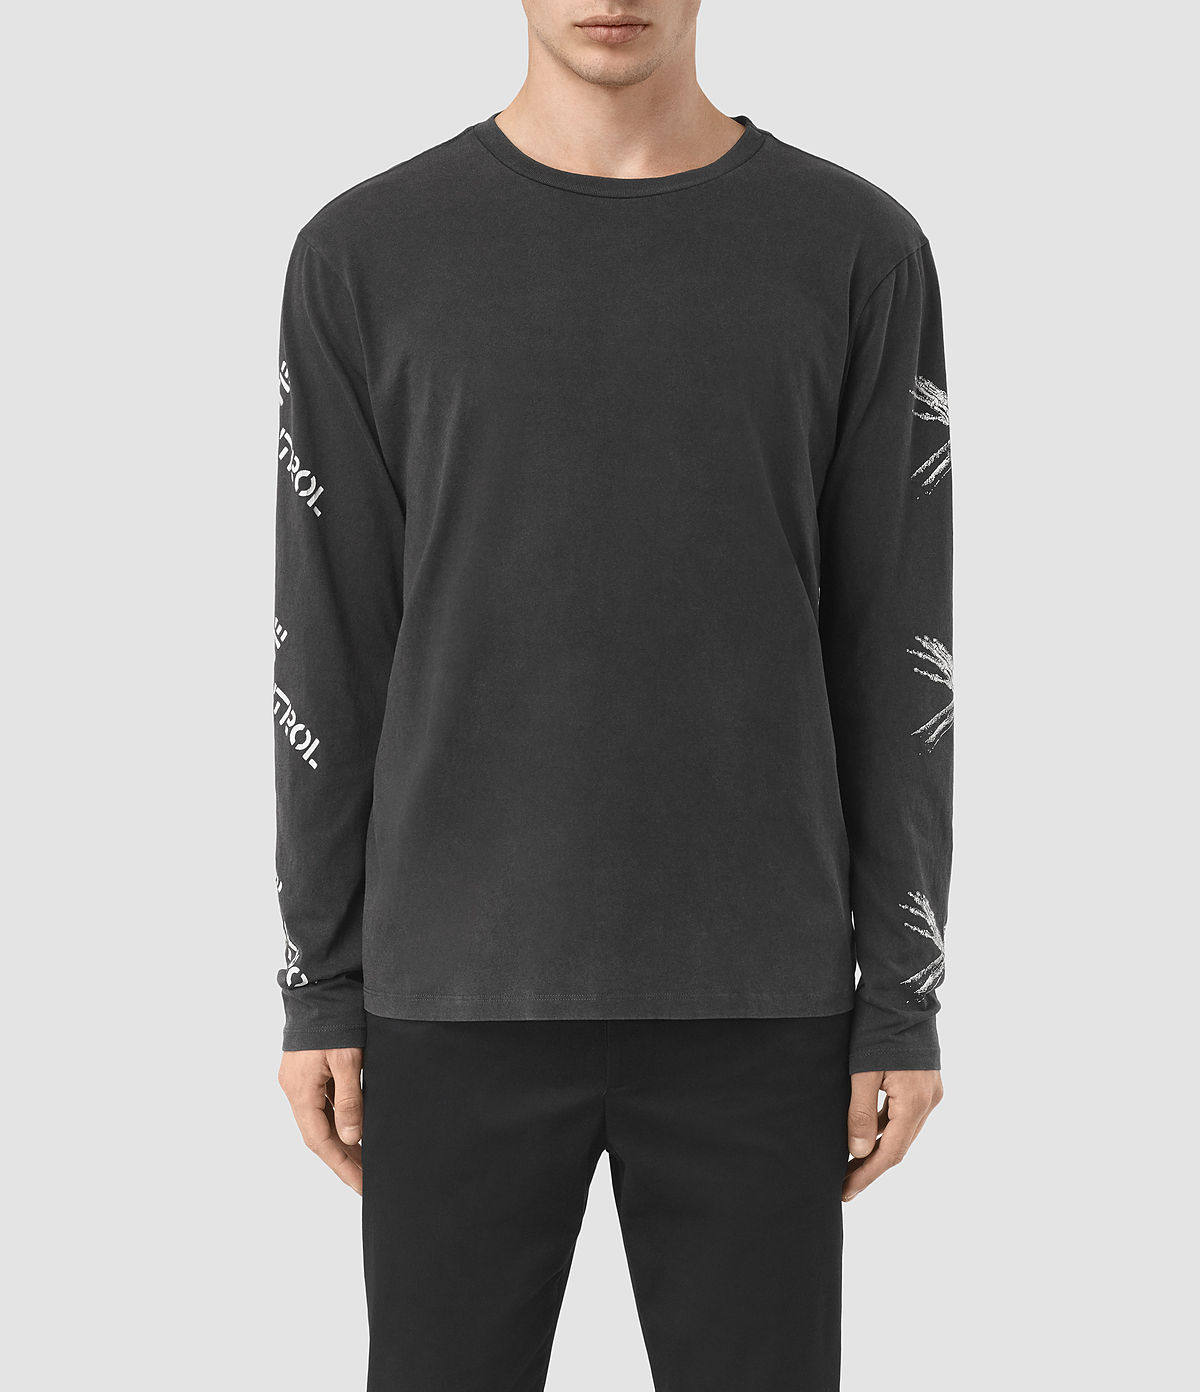 ALLSAINTS UK: Mens Remote Long Sleeve Crew T-Shirt (Vintage Black)